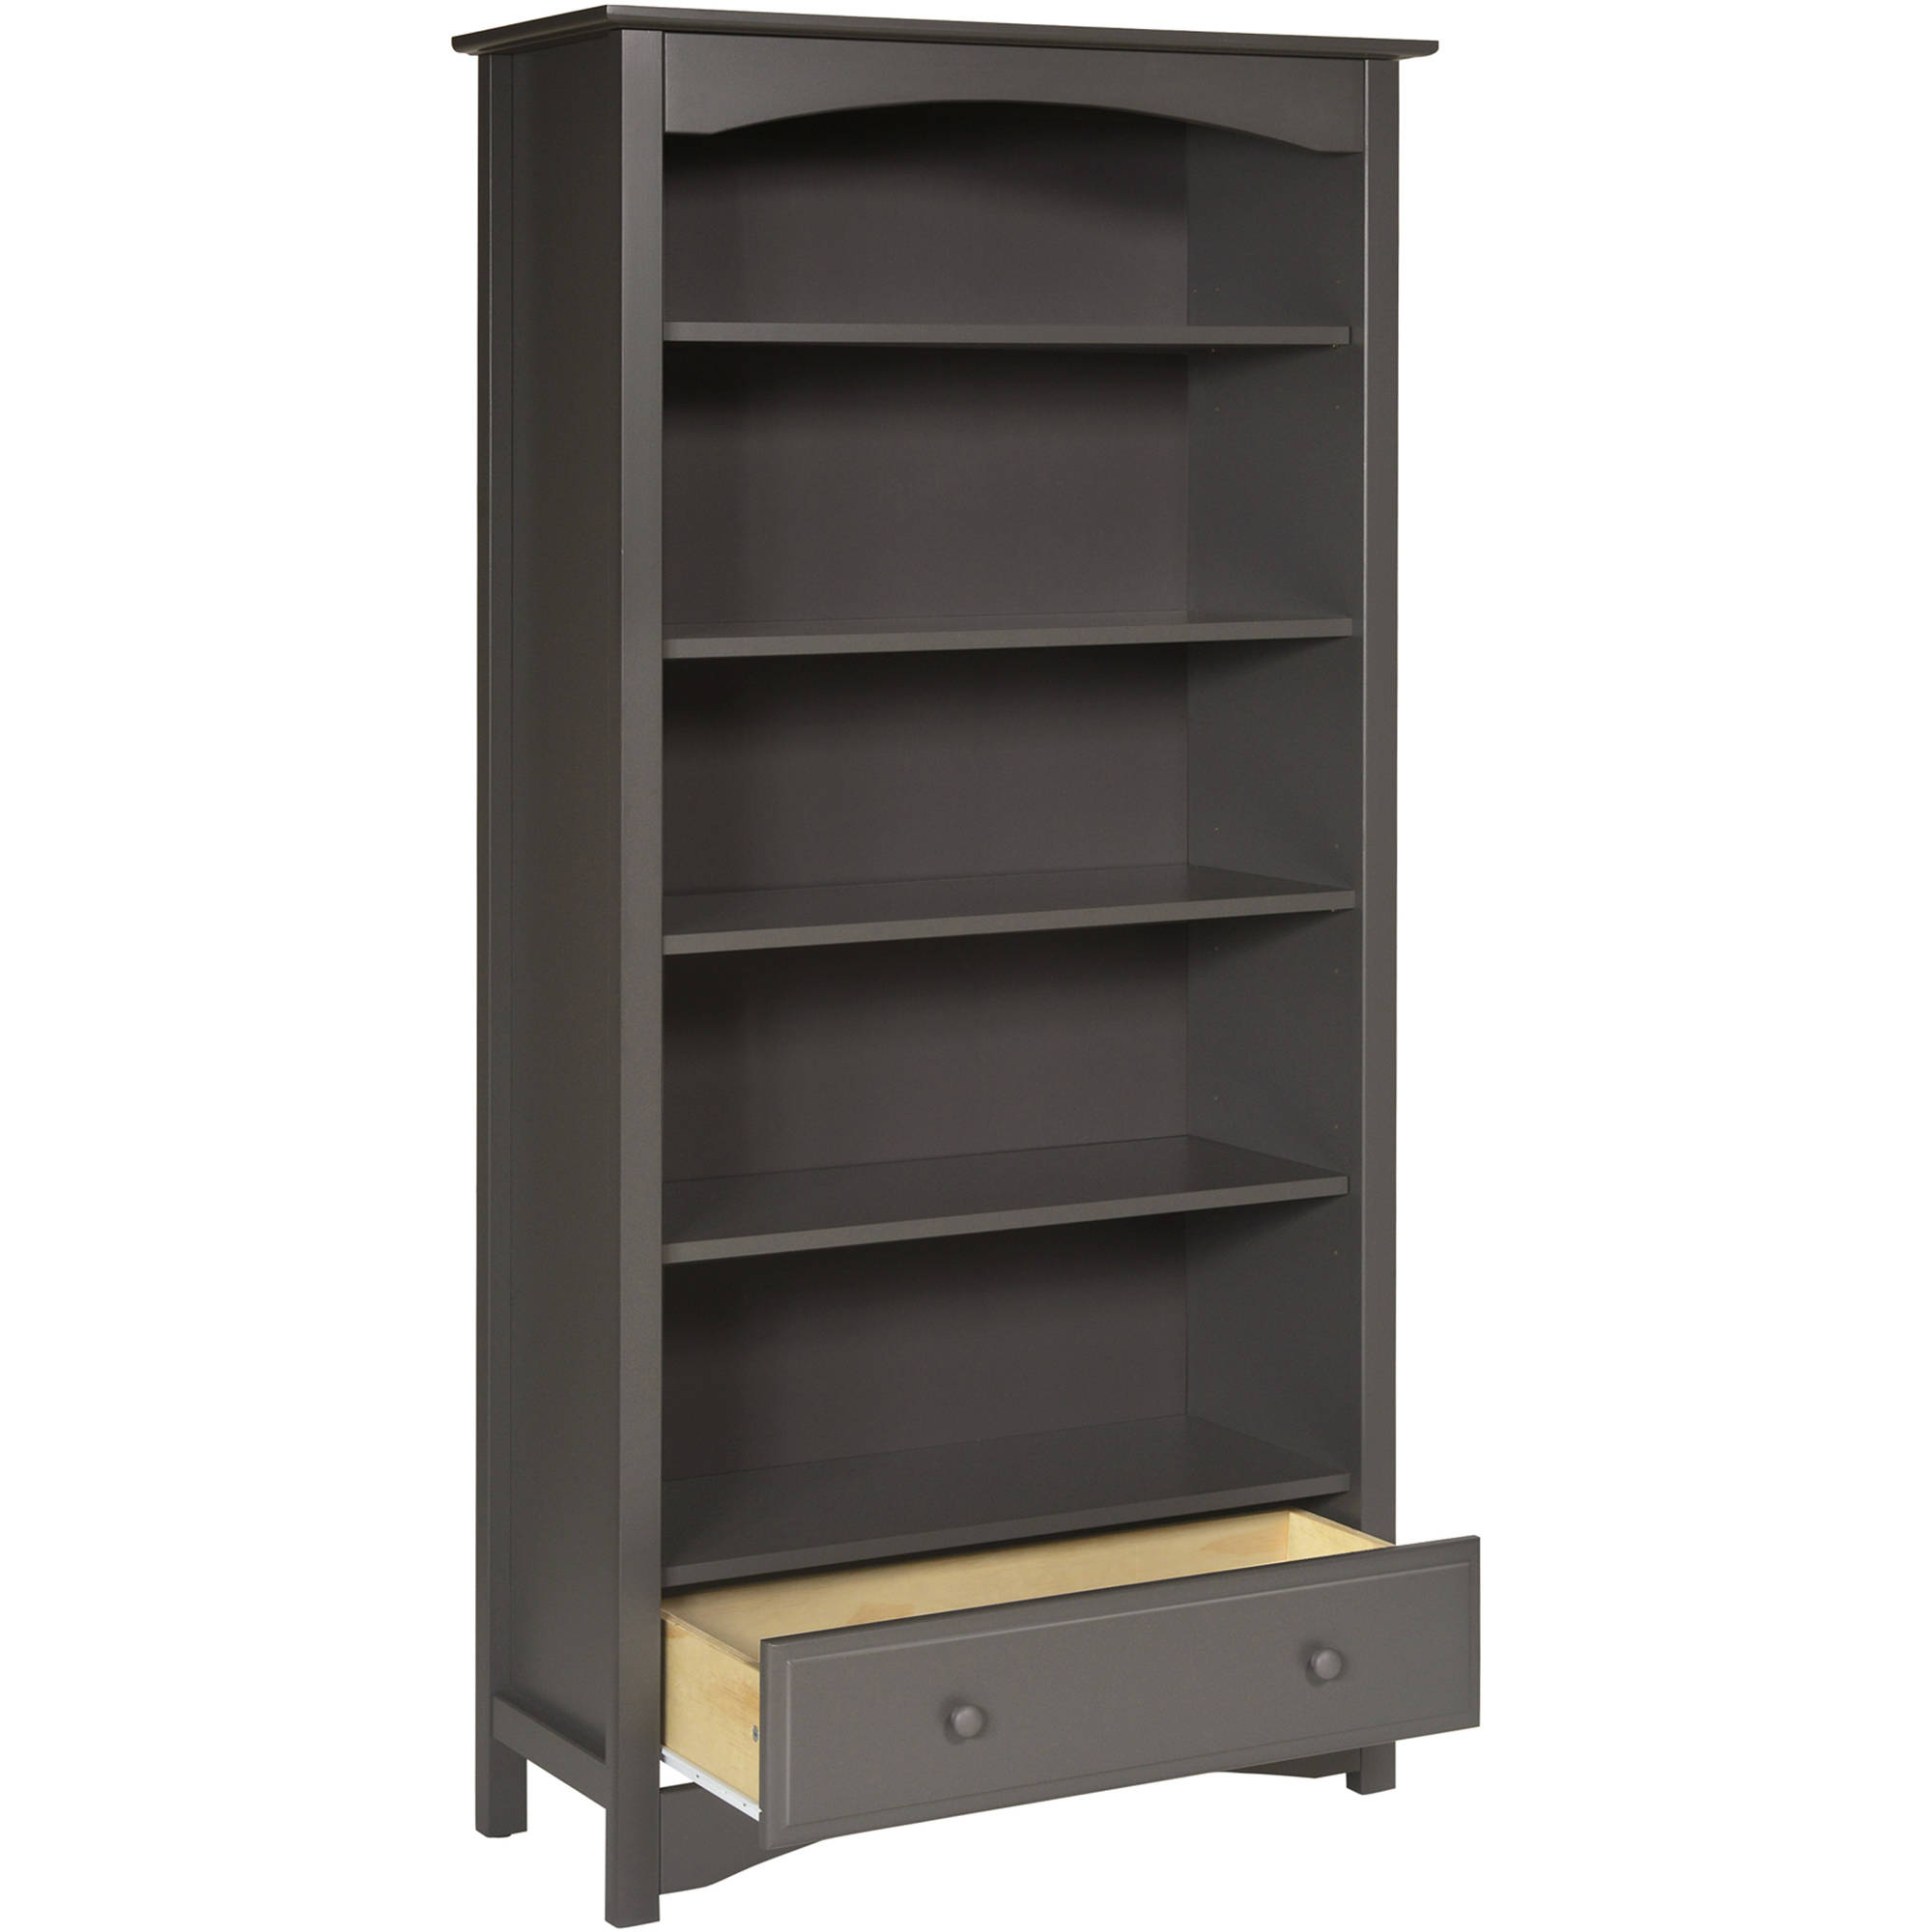 Davinci Mdb Bookcase In White Finish With Most Popular Mdb Standard Bookcases (View 5 of 20)